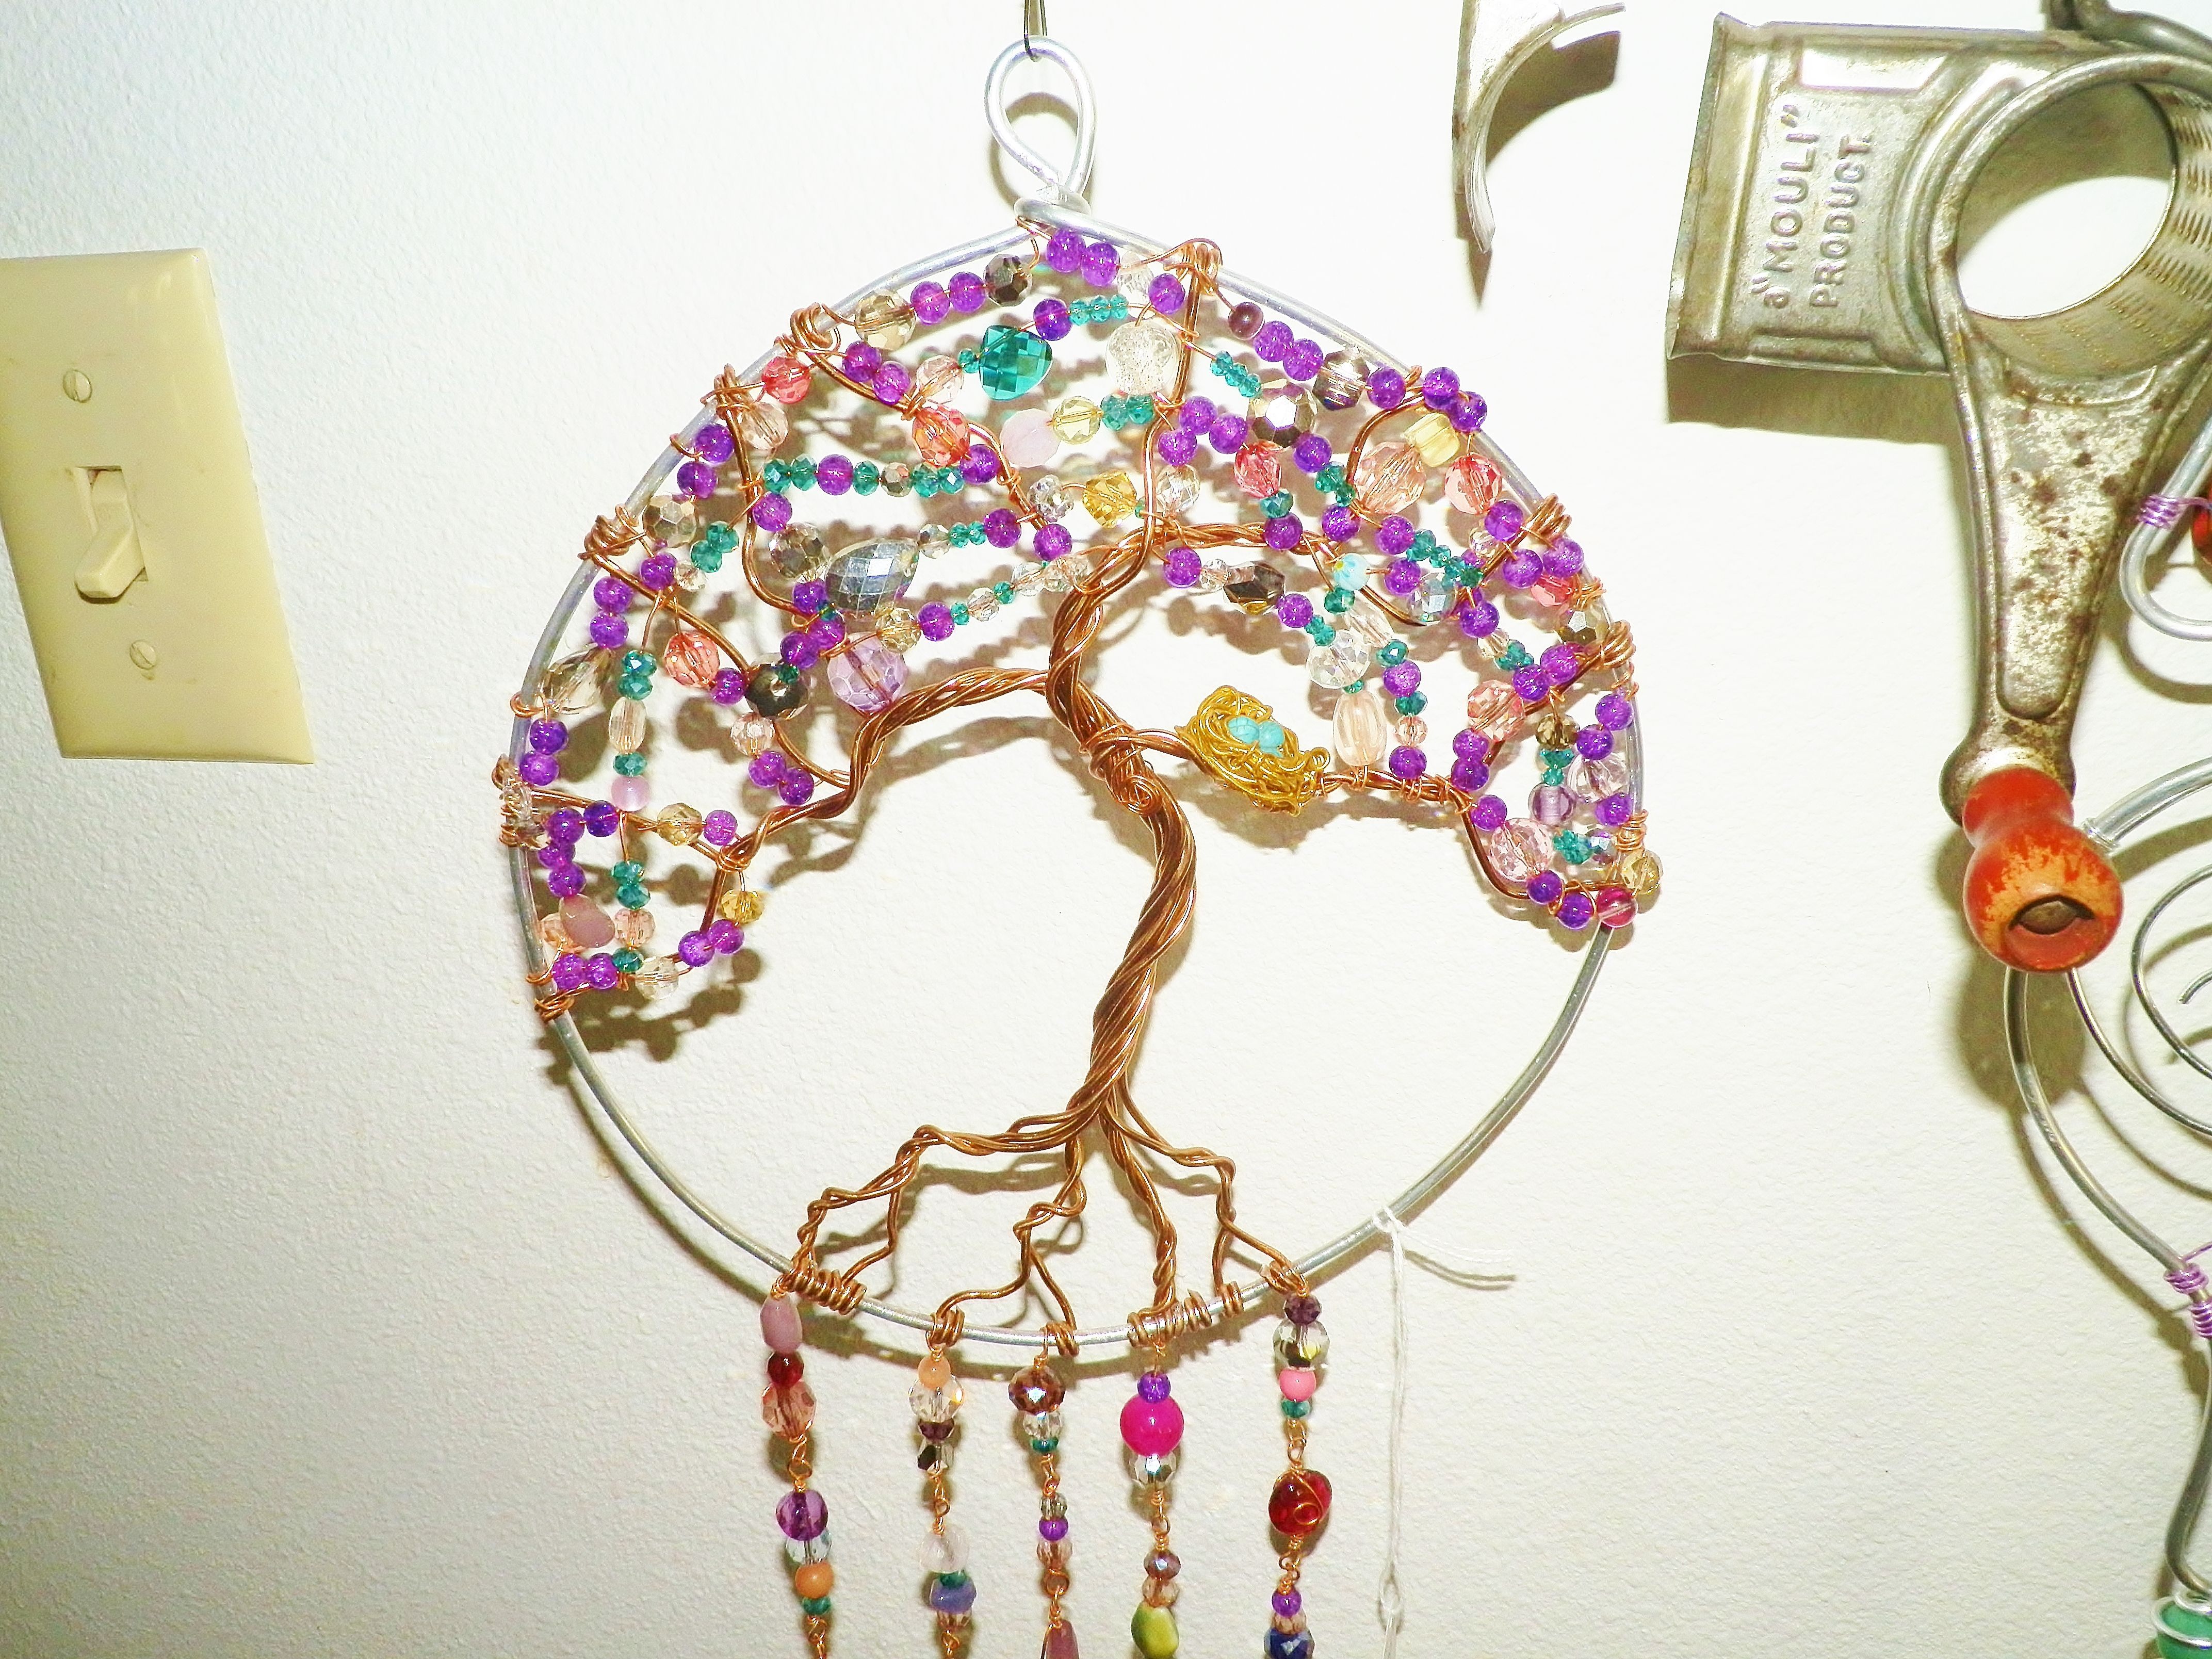 Tree Of Life, Sun Catcher, With Birds Nest, Garden Art, Wire Wrapped